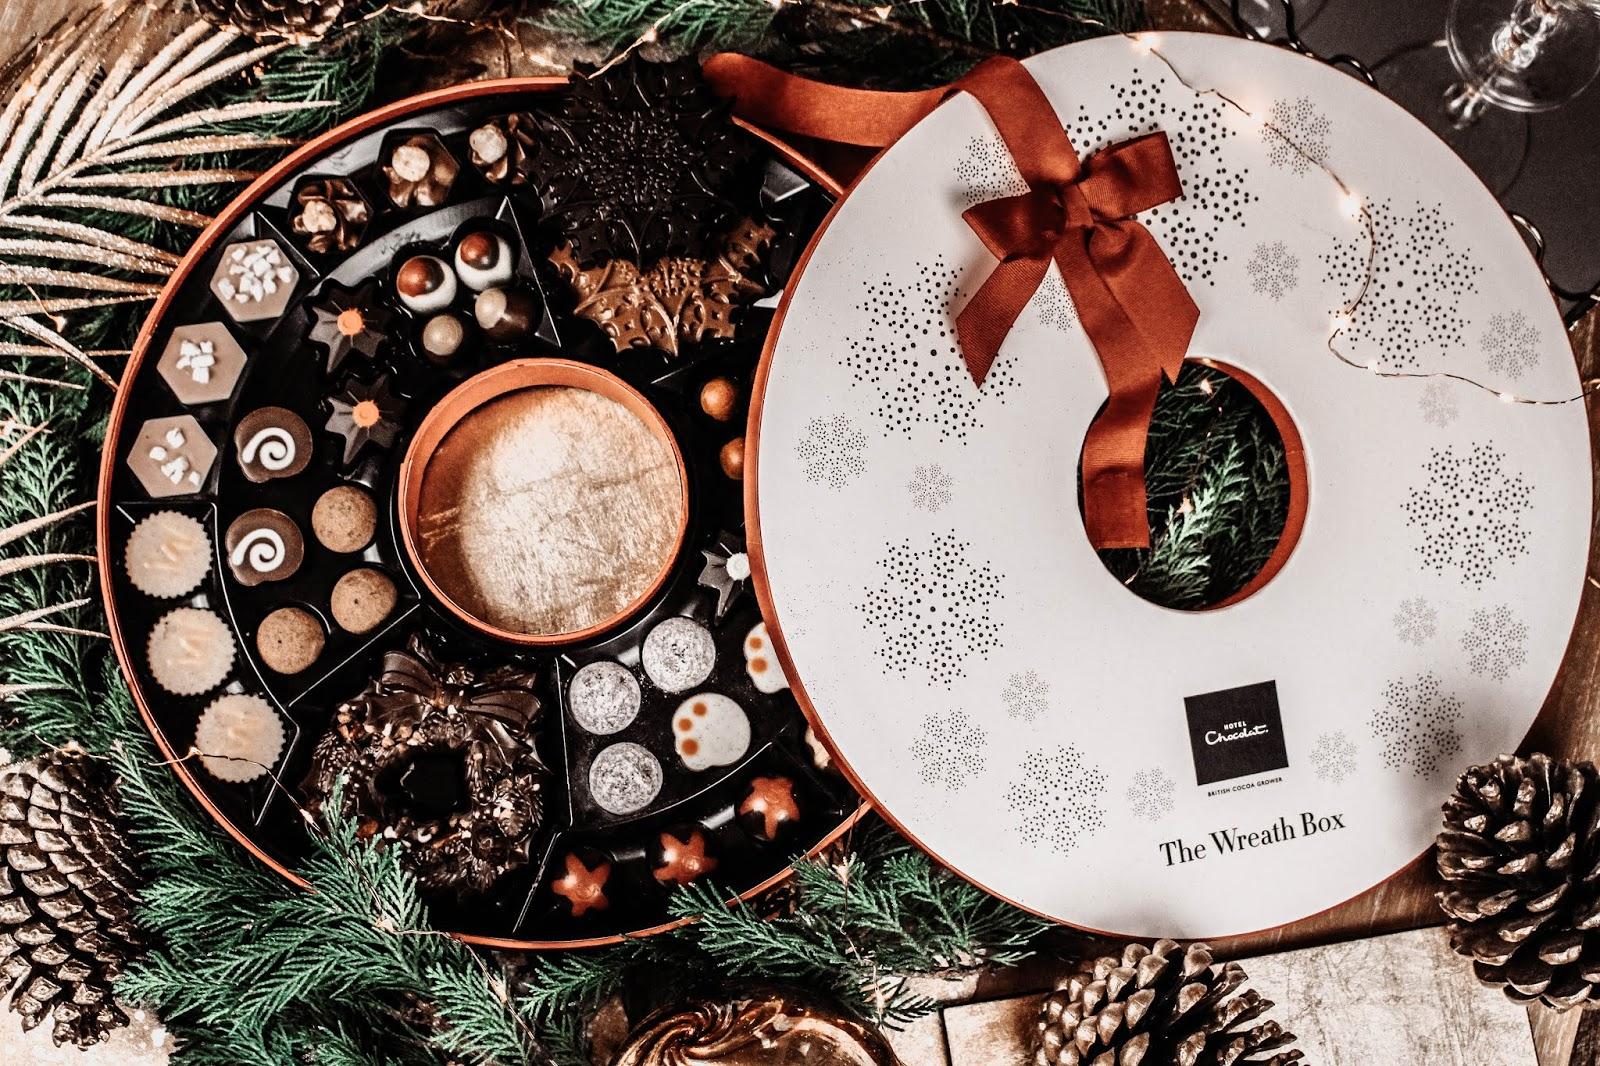 Hotel Chocolat Christmas Collection 2018 Wreath In A Box